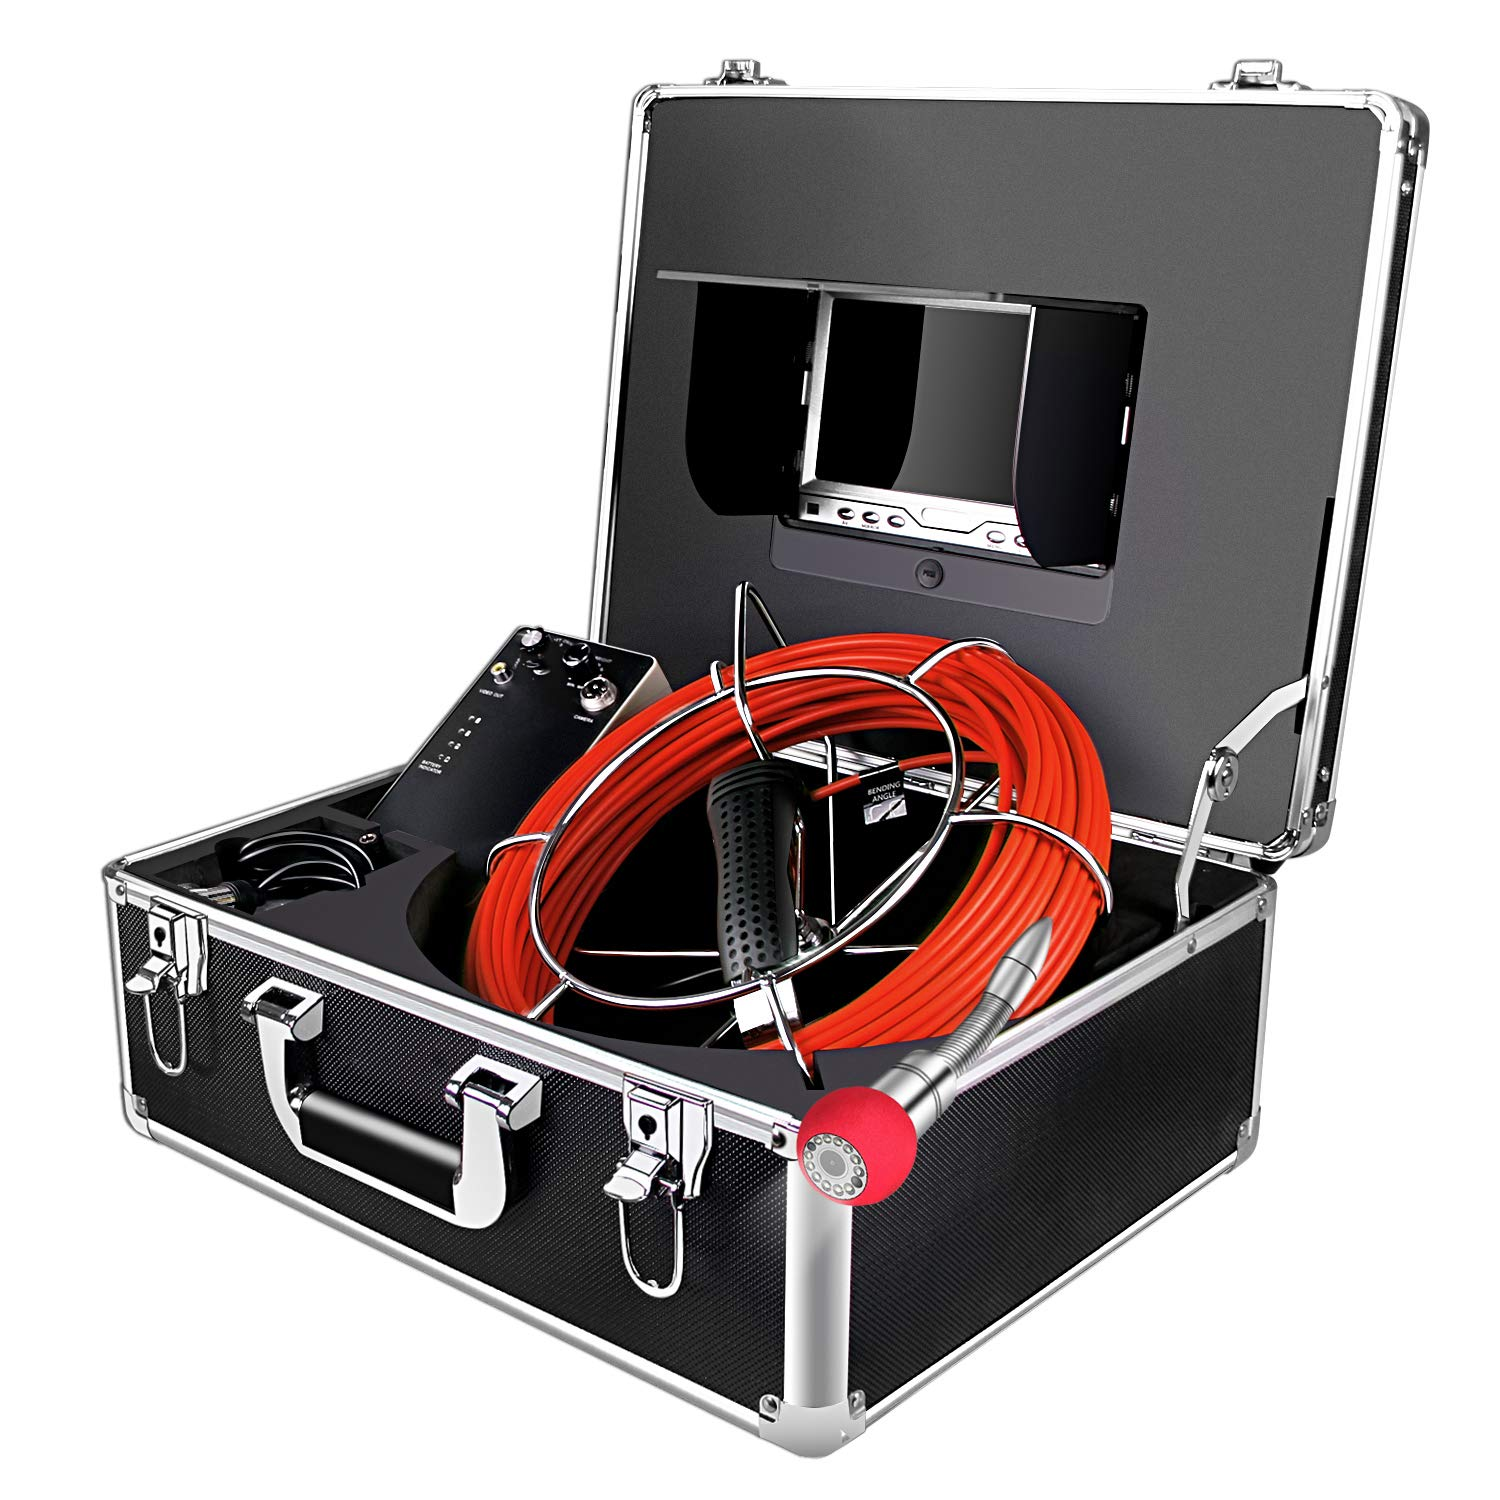 Borescope Camera 65ft with Distance Counter Snake Cam Video Sewer Pipe Inspection Equipment 7 inch LCD Monitor Duct HVAC 1000TVL image